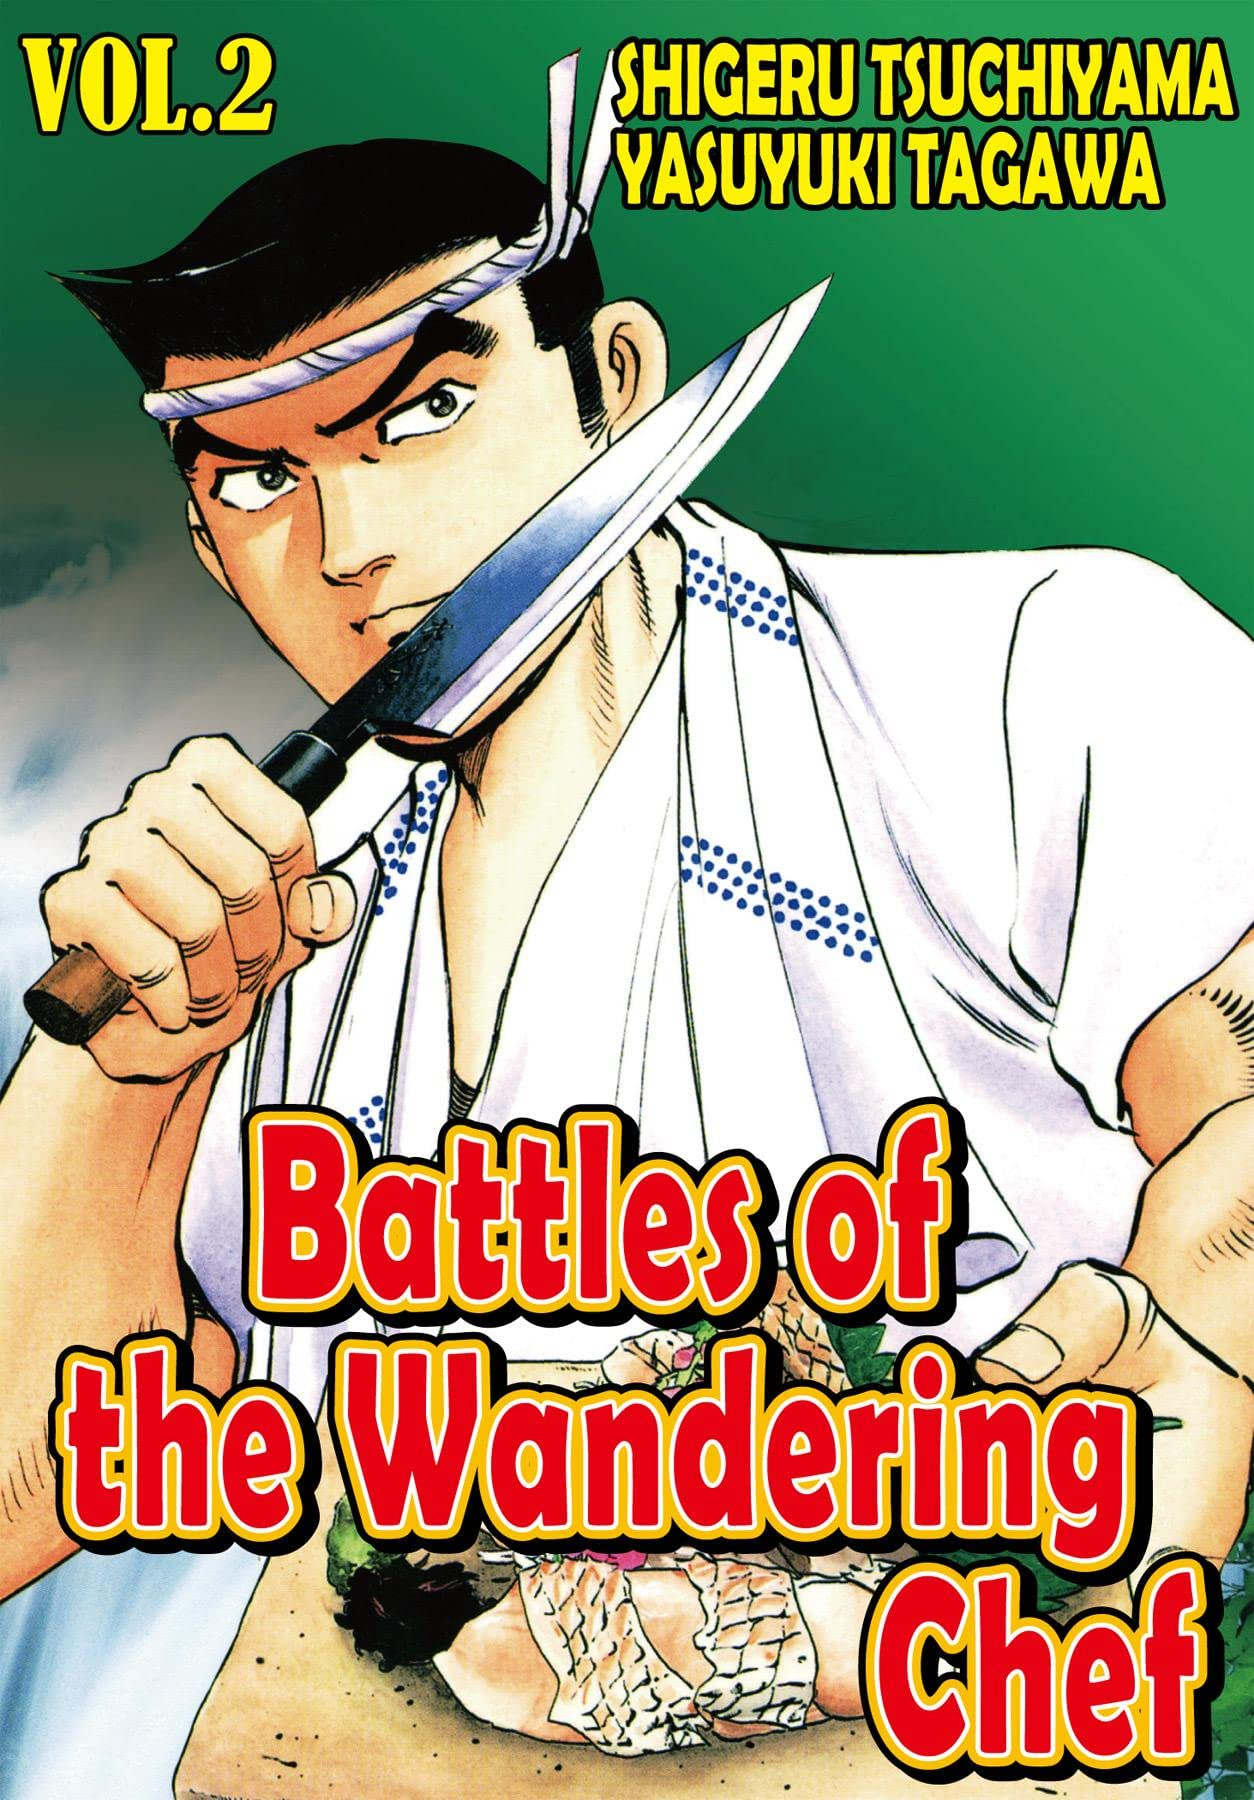 BATTLES OF THE WANDERING CHEF Vol. 2